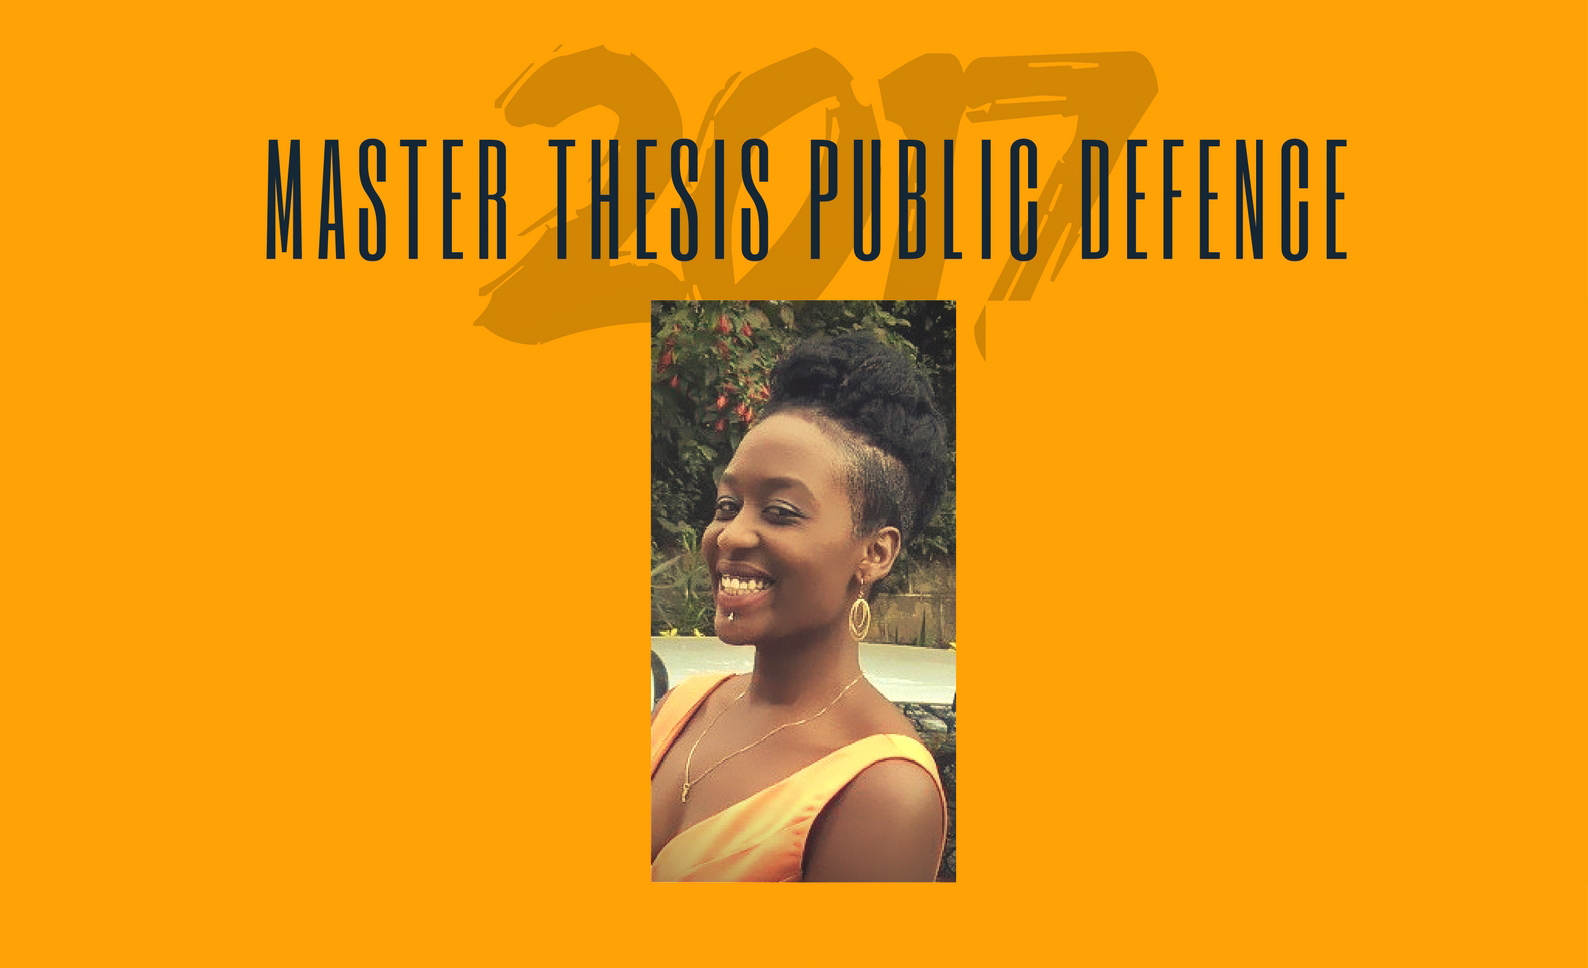 MSc Thesis Public Defence: Tuesday 27/6, Kanyali